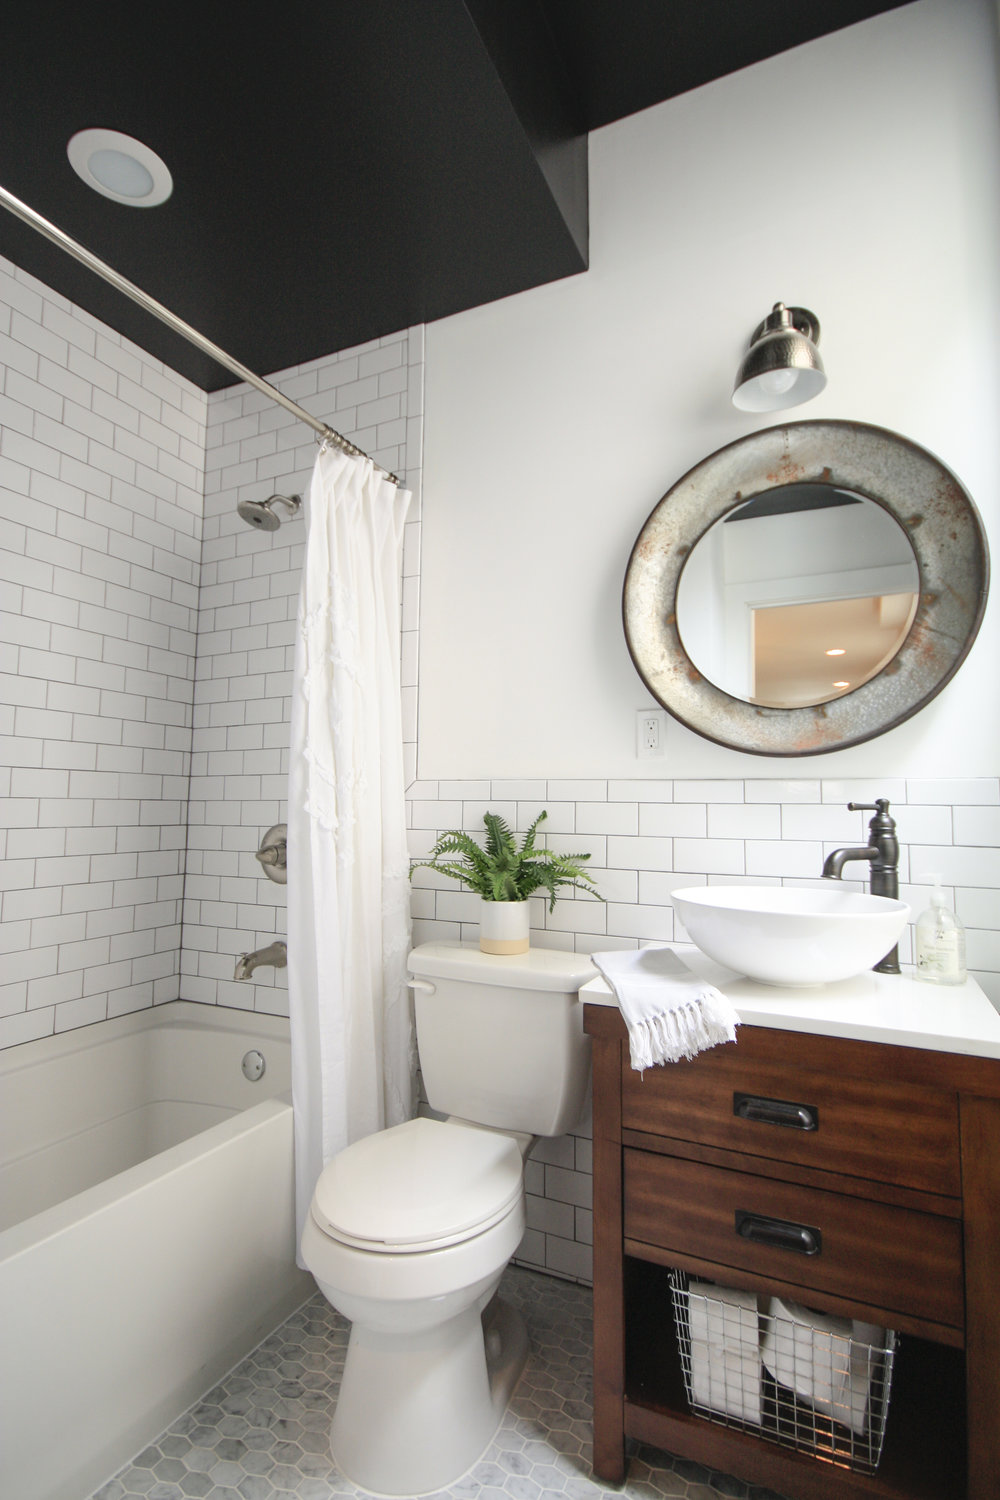 10 ways to use subway tile that arent boring af flippinwendy design black ceiling with white subway tile and dark grout dailygadgetfo Choice Image